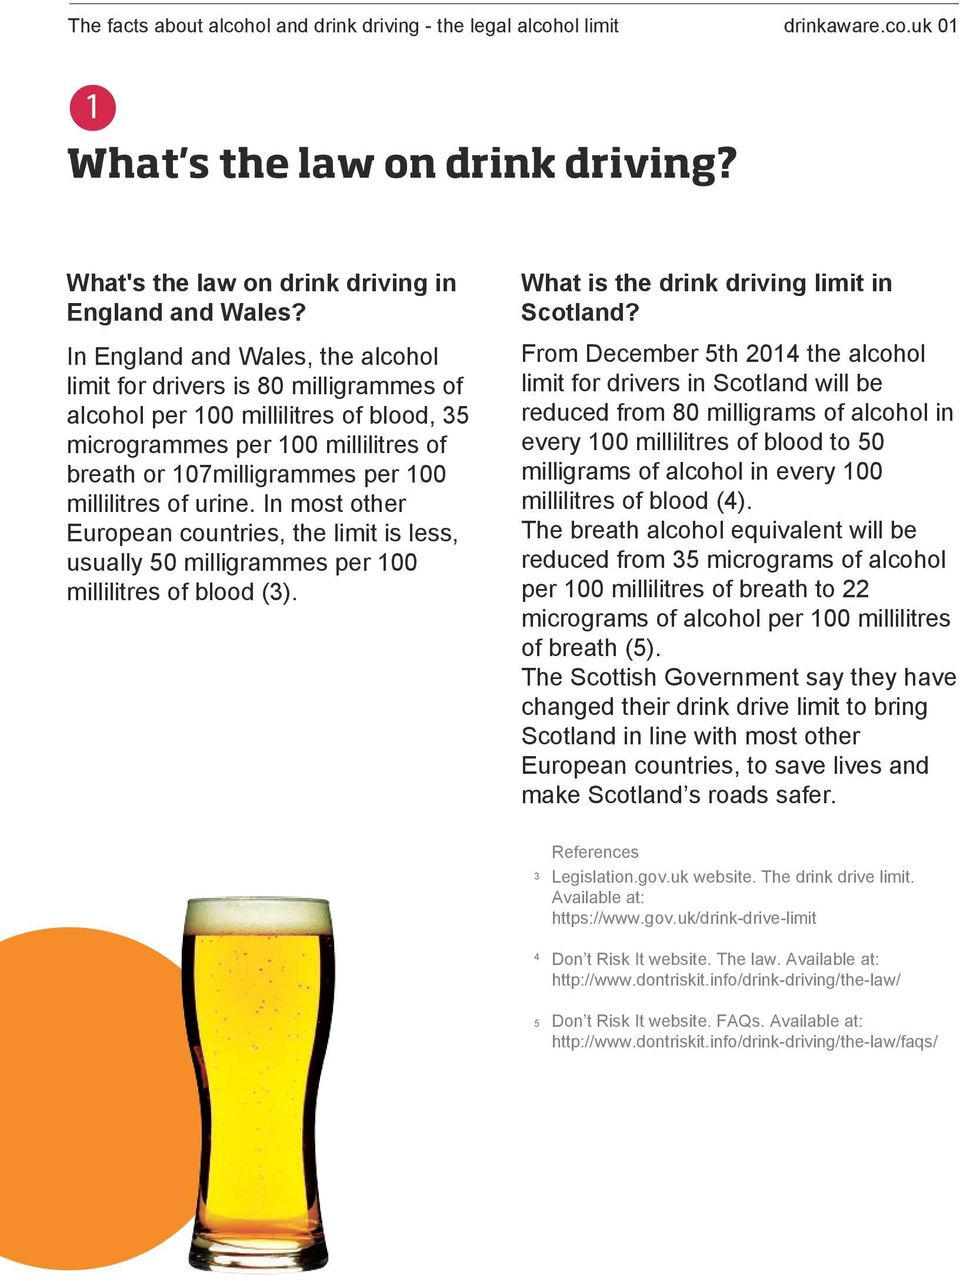 urine. In most other European countries, the limit is less, usually 50 milligrammes per 100 millilitres of blood (3). What is the drink driving limit in Scotland?